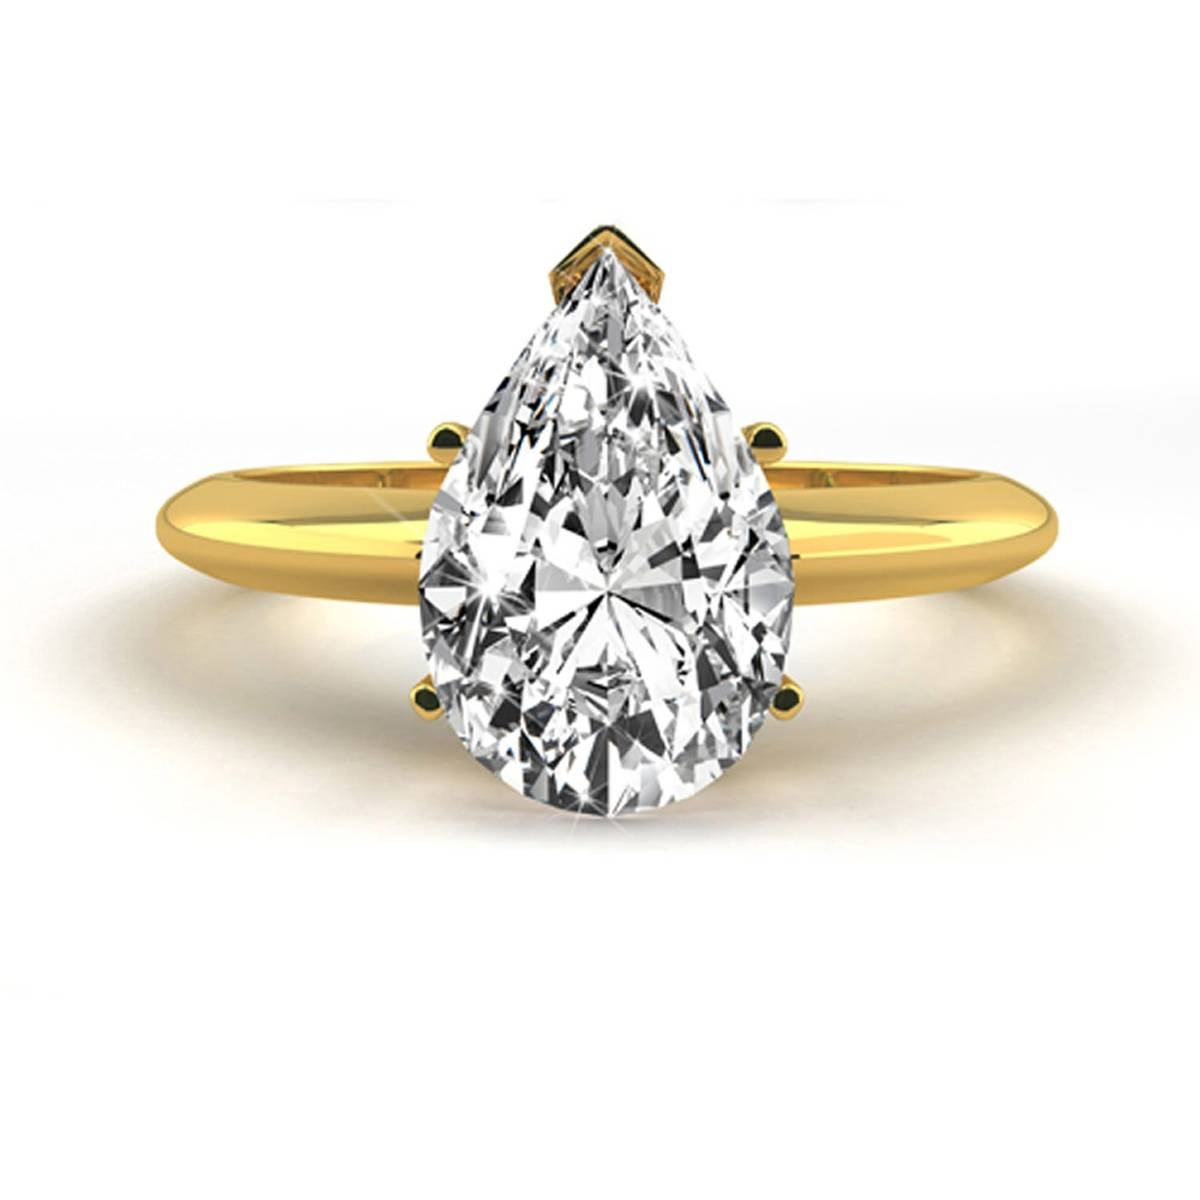 1.5 Carat Pear Shaped E/vs1 Diamond Engagement Ring 14K Yellow Throughout  (View 6 of 15)